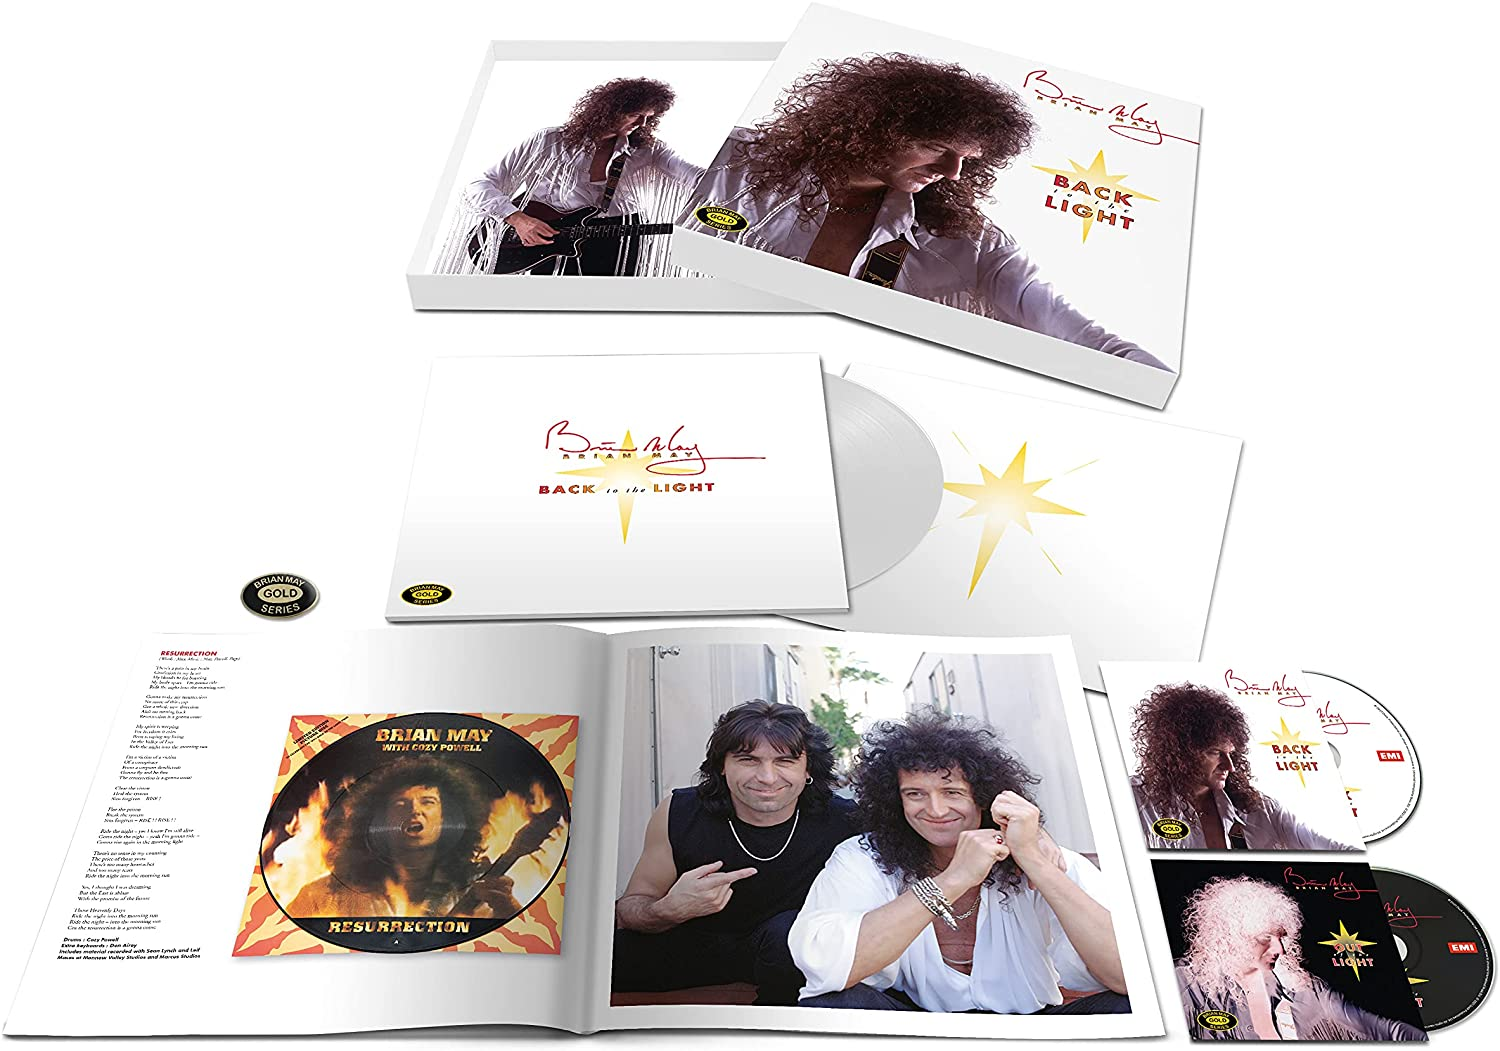 backtothelight reissue Brian May